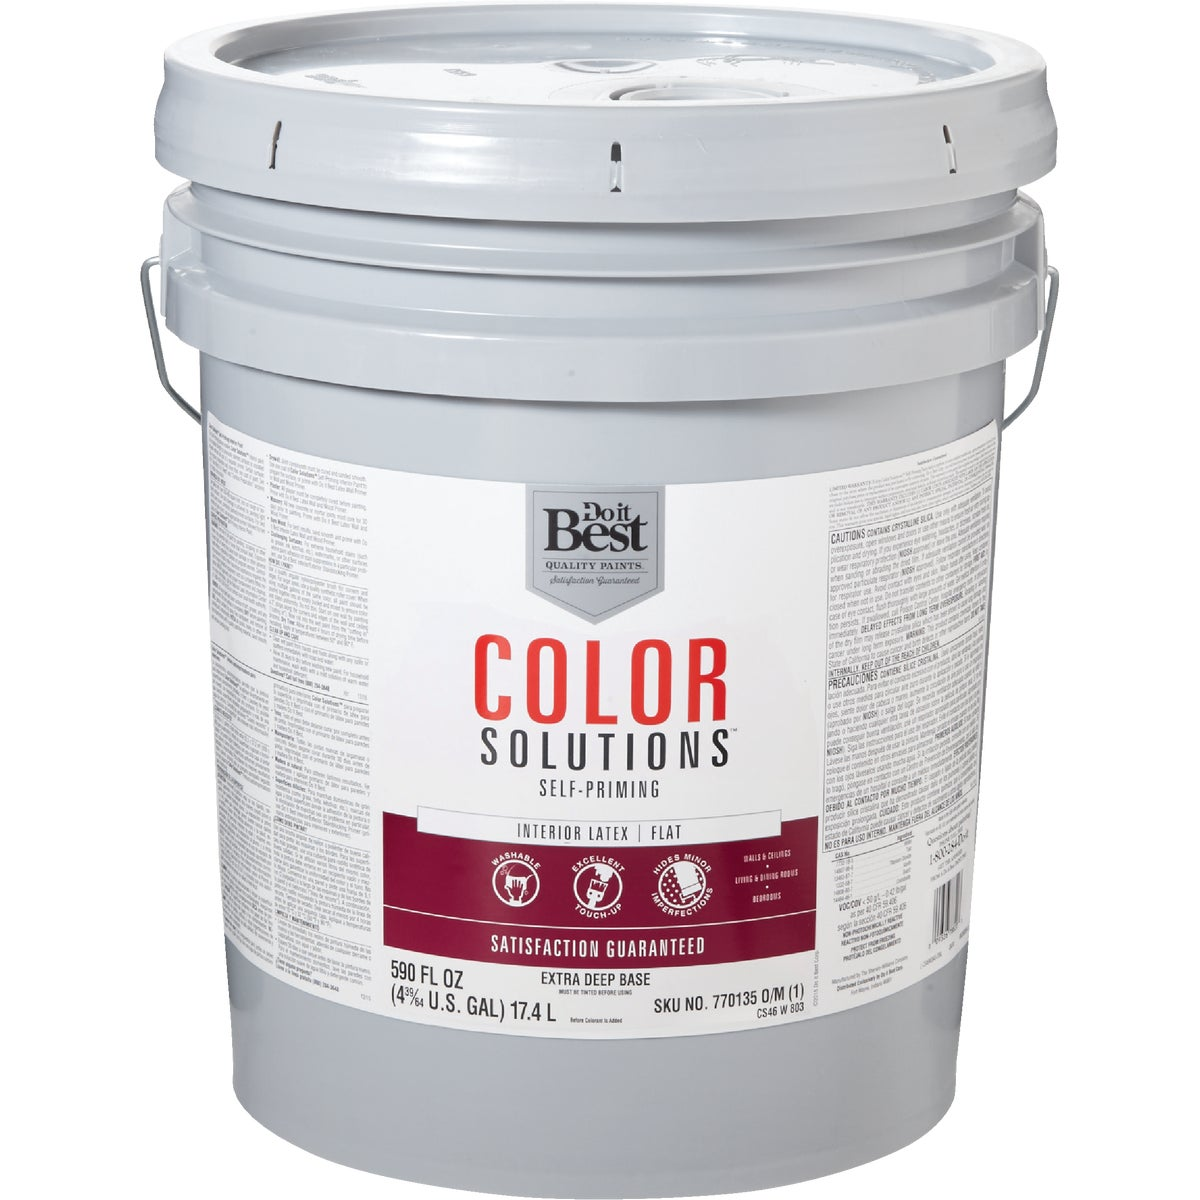 INT FLT EX DEEP BS PAINT - CS46W0803-20 by Do it Best